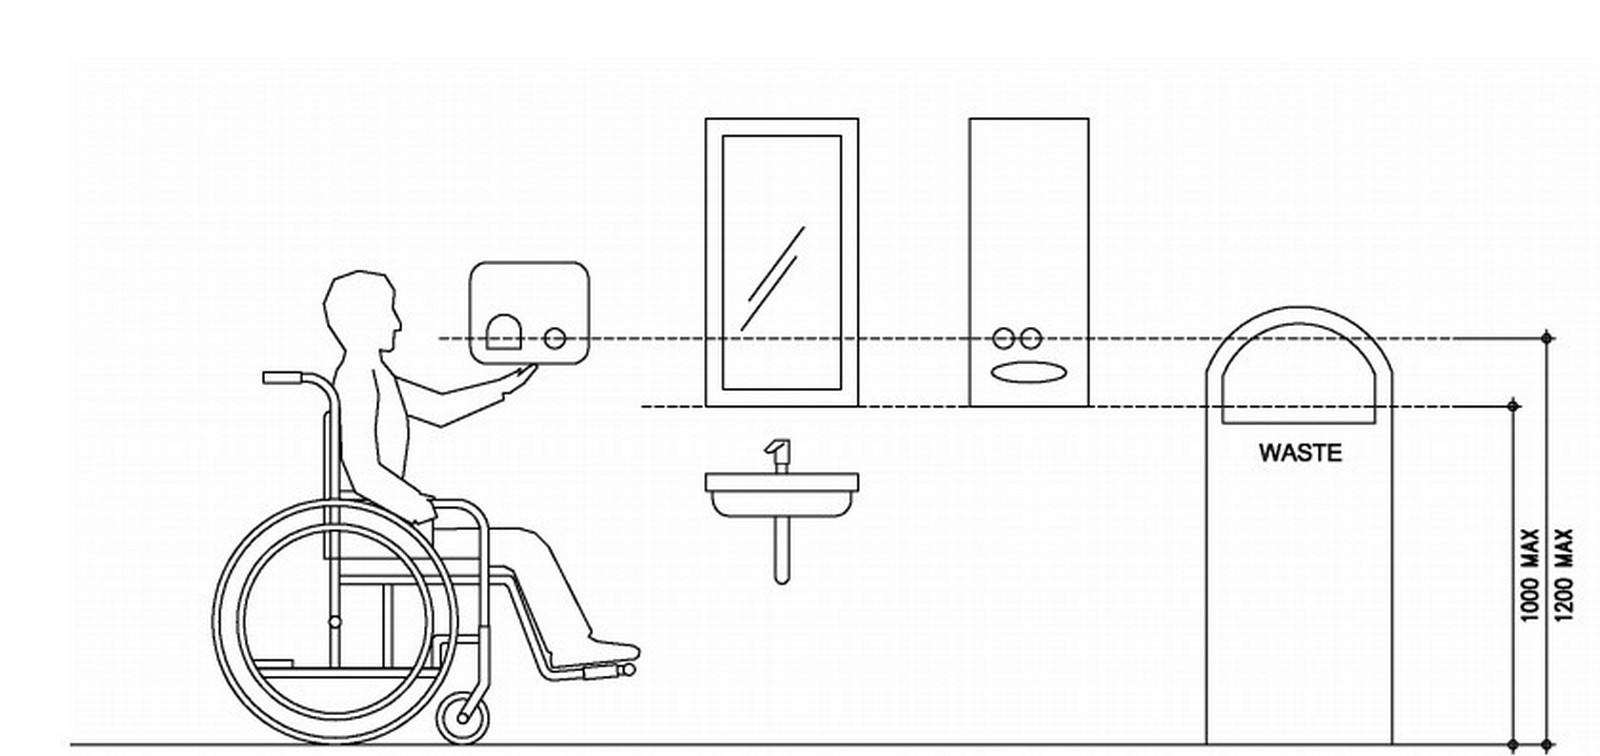 10 things to remember when designing accessible forms - Sheet5